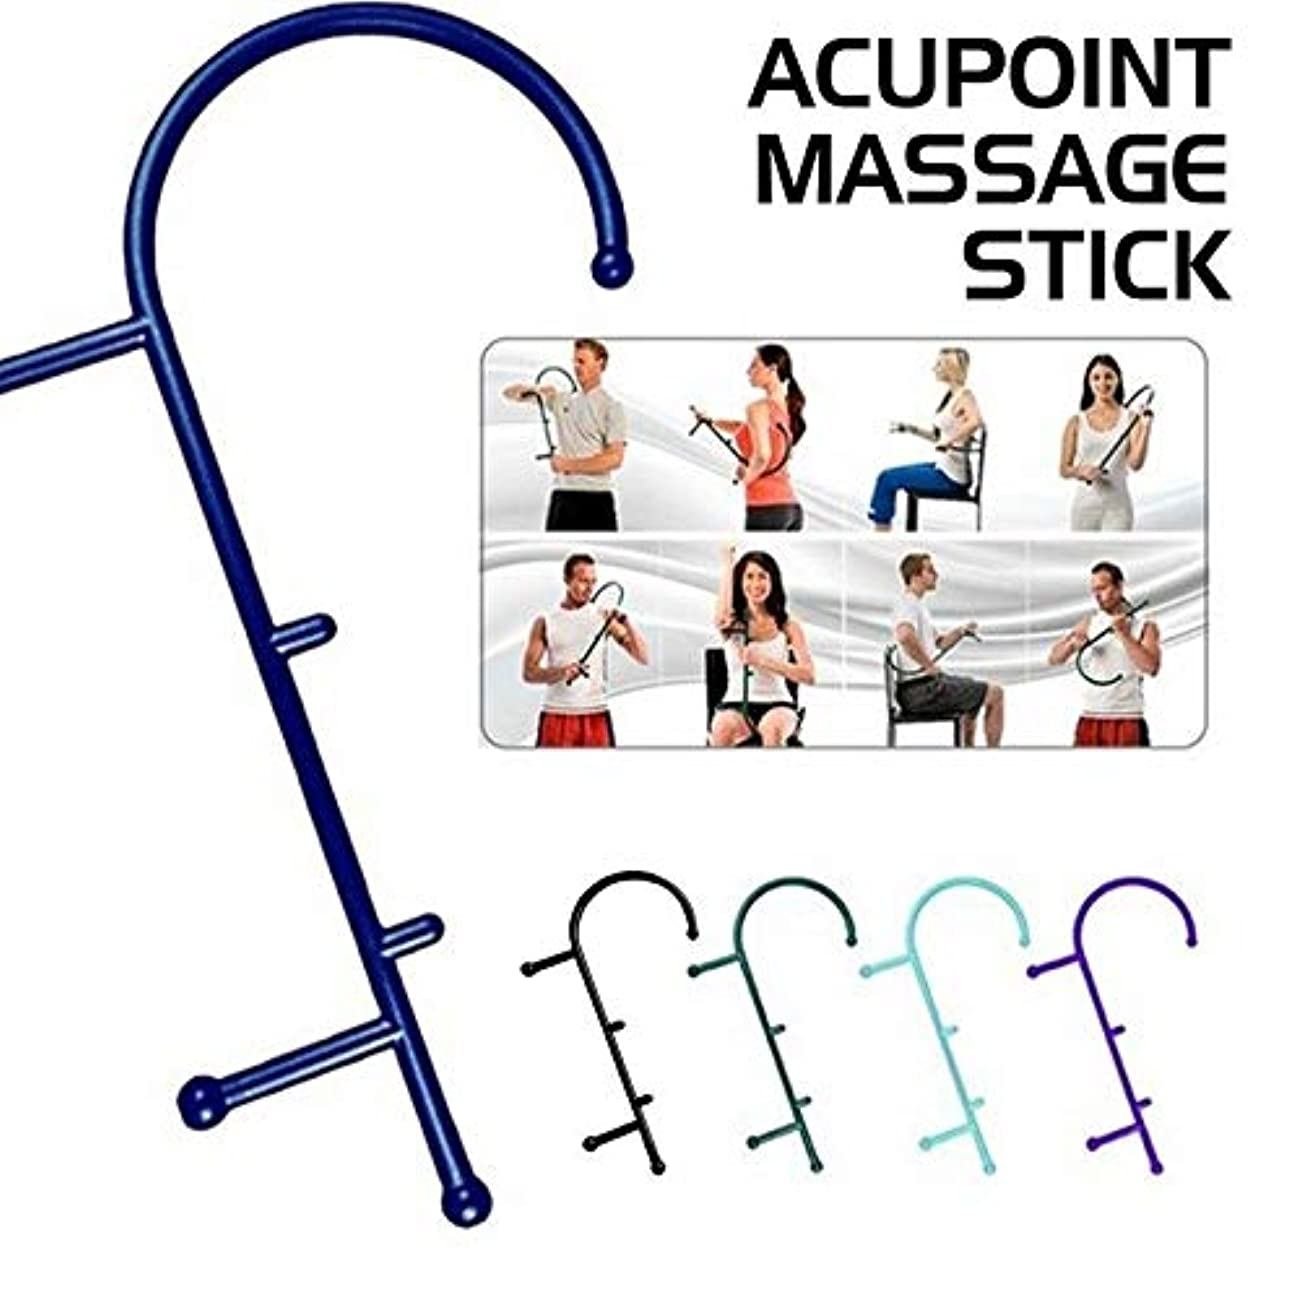 Full Body Cane Back Hook Massager Neck Self Muscle Pressure Stick Tool Acupoint Massage St